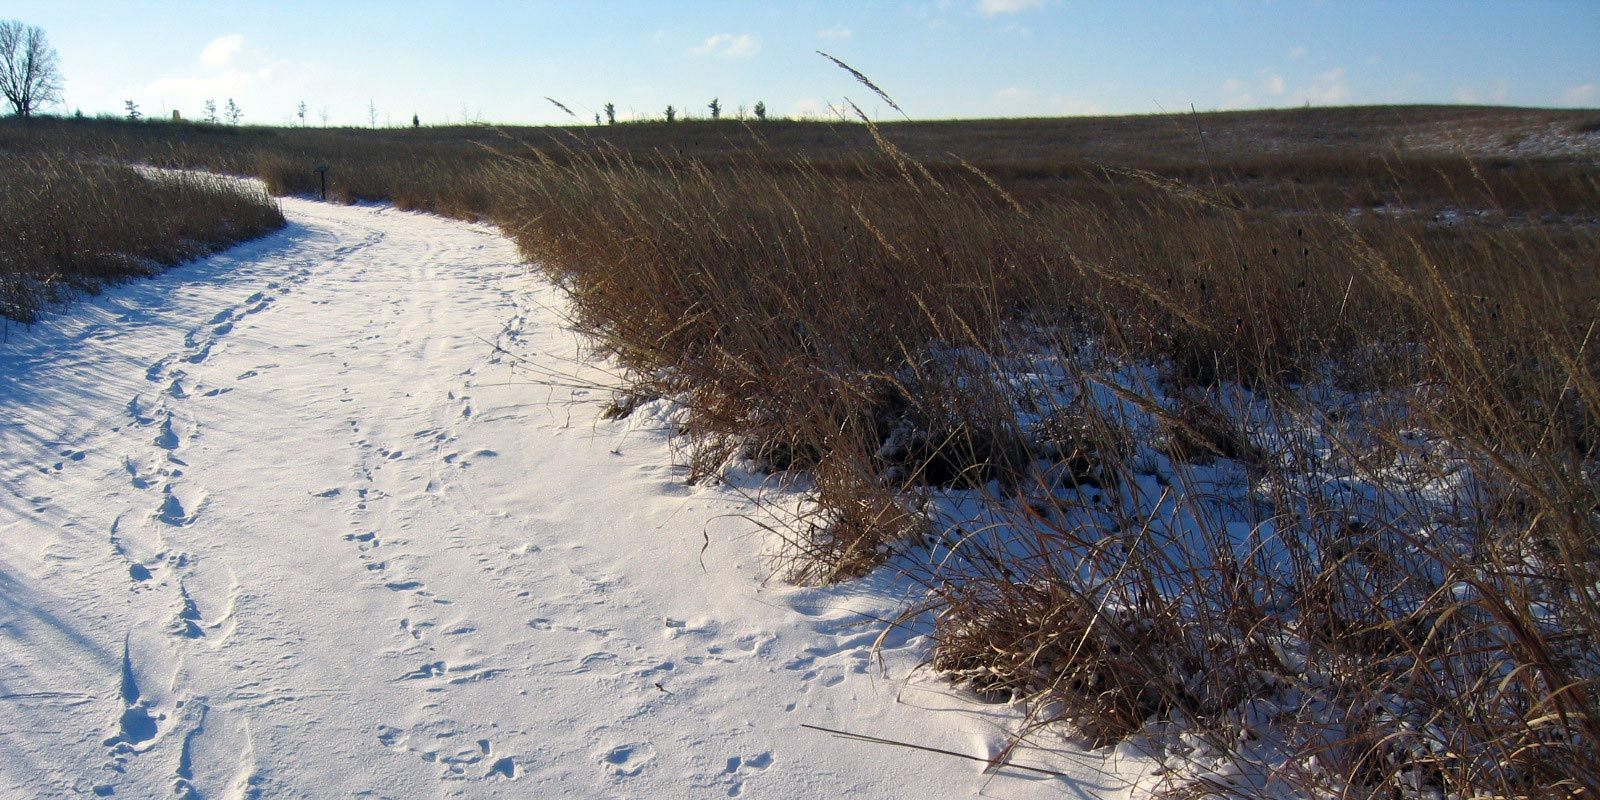 A snow covered trail through a grassland shows tracks of snowshoes alongside animal tracks.